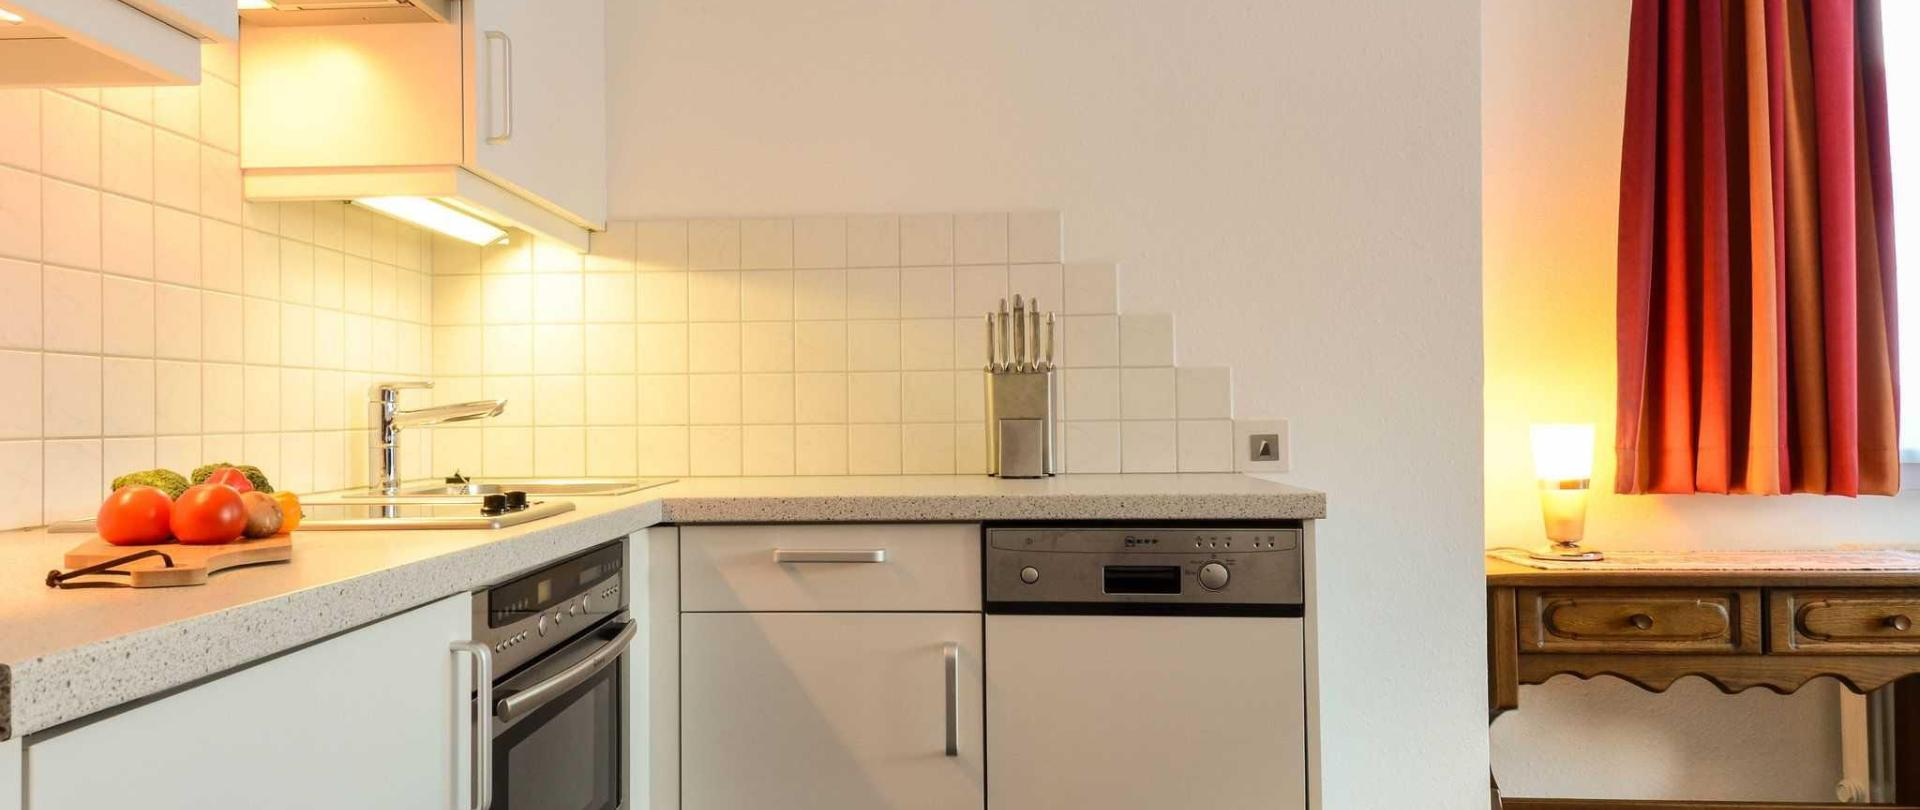 haus-strutzenberger-apartment-2-kitchen.jpg